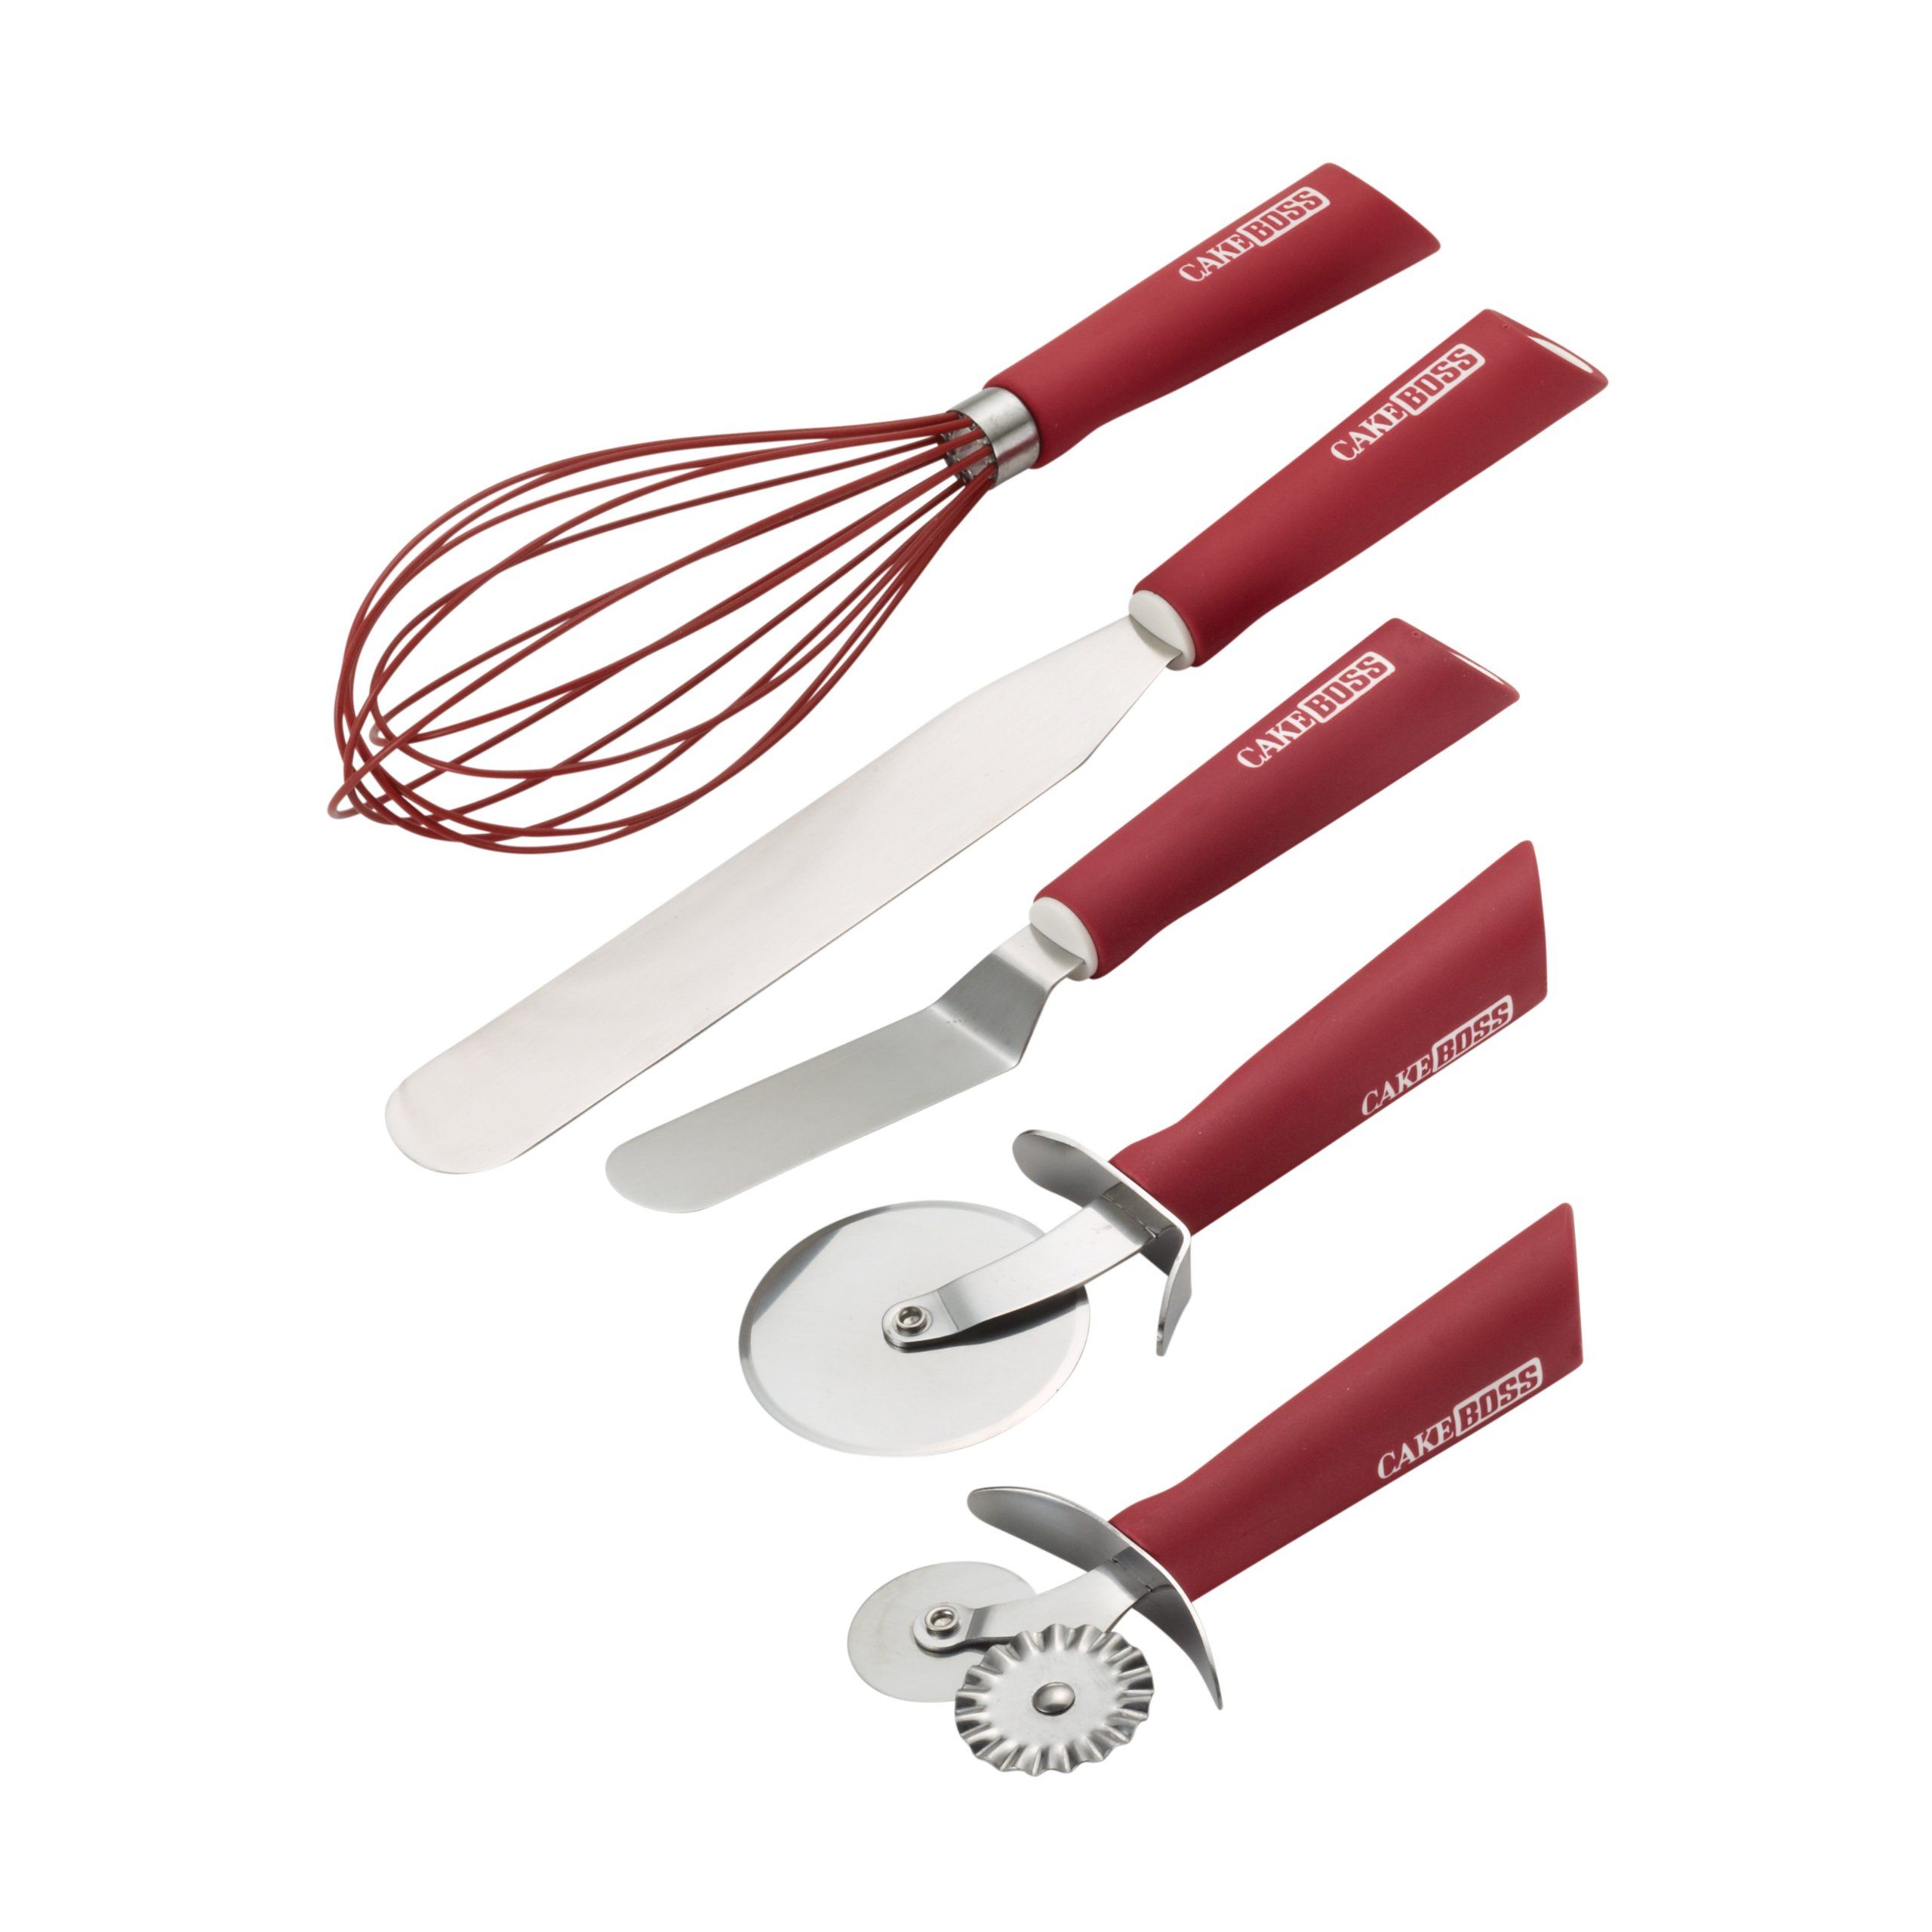 New Cake Decorating Gadgets : Cake Boss Stainless Steel Tools and Gadgets 5-Piece Baking ...